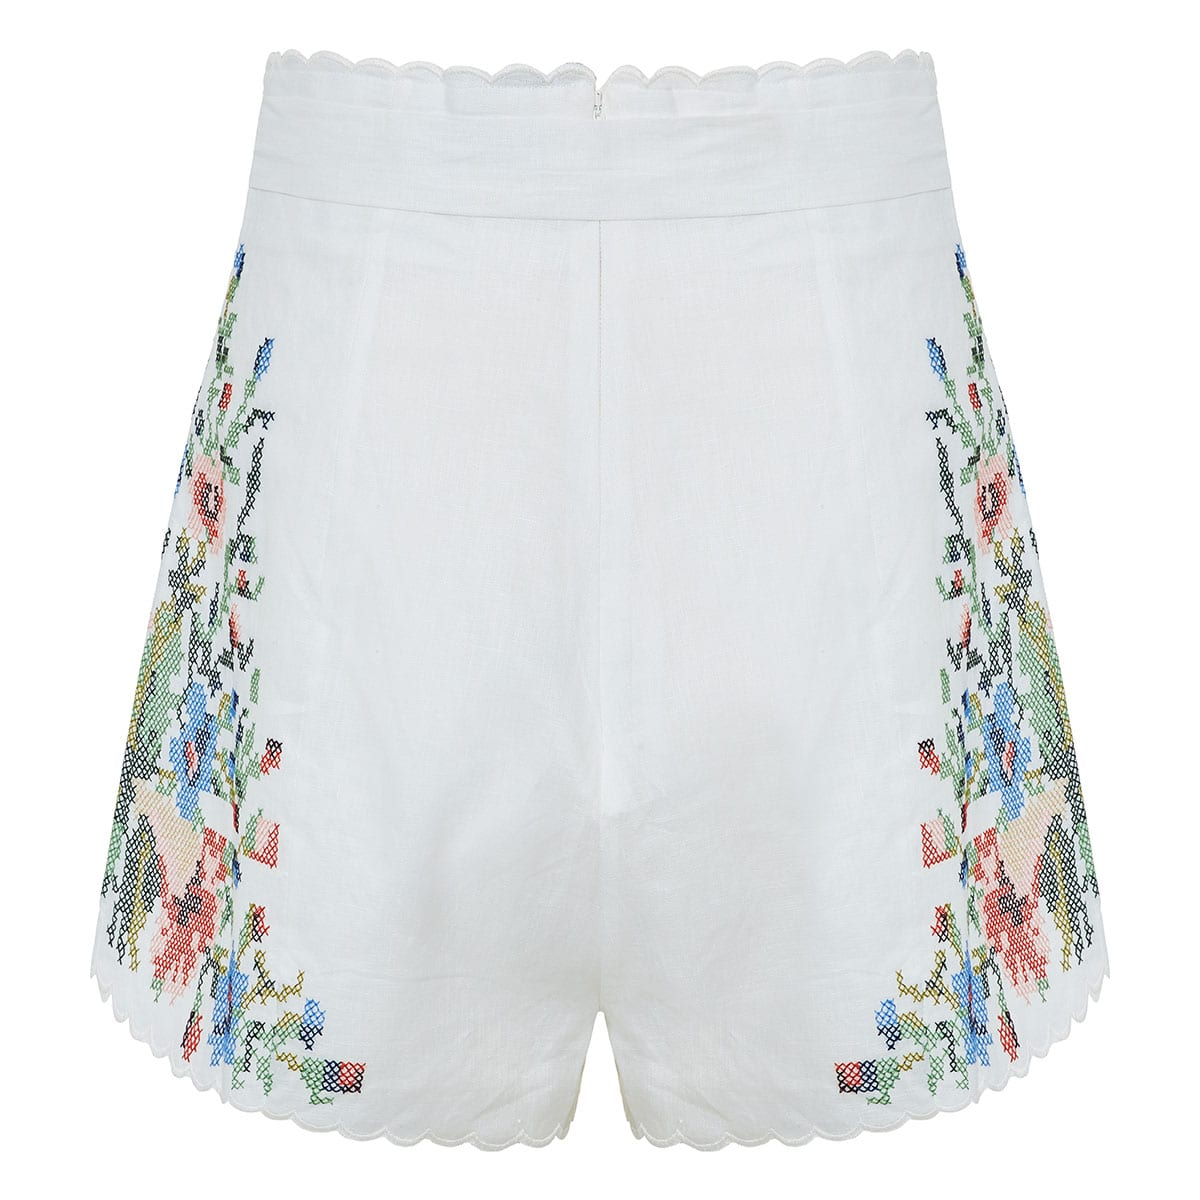 Juliette floral-embroidered linen shorts